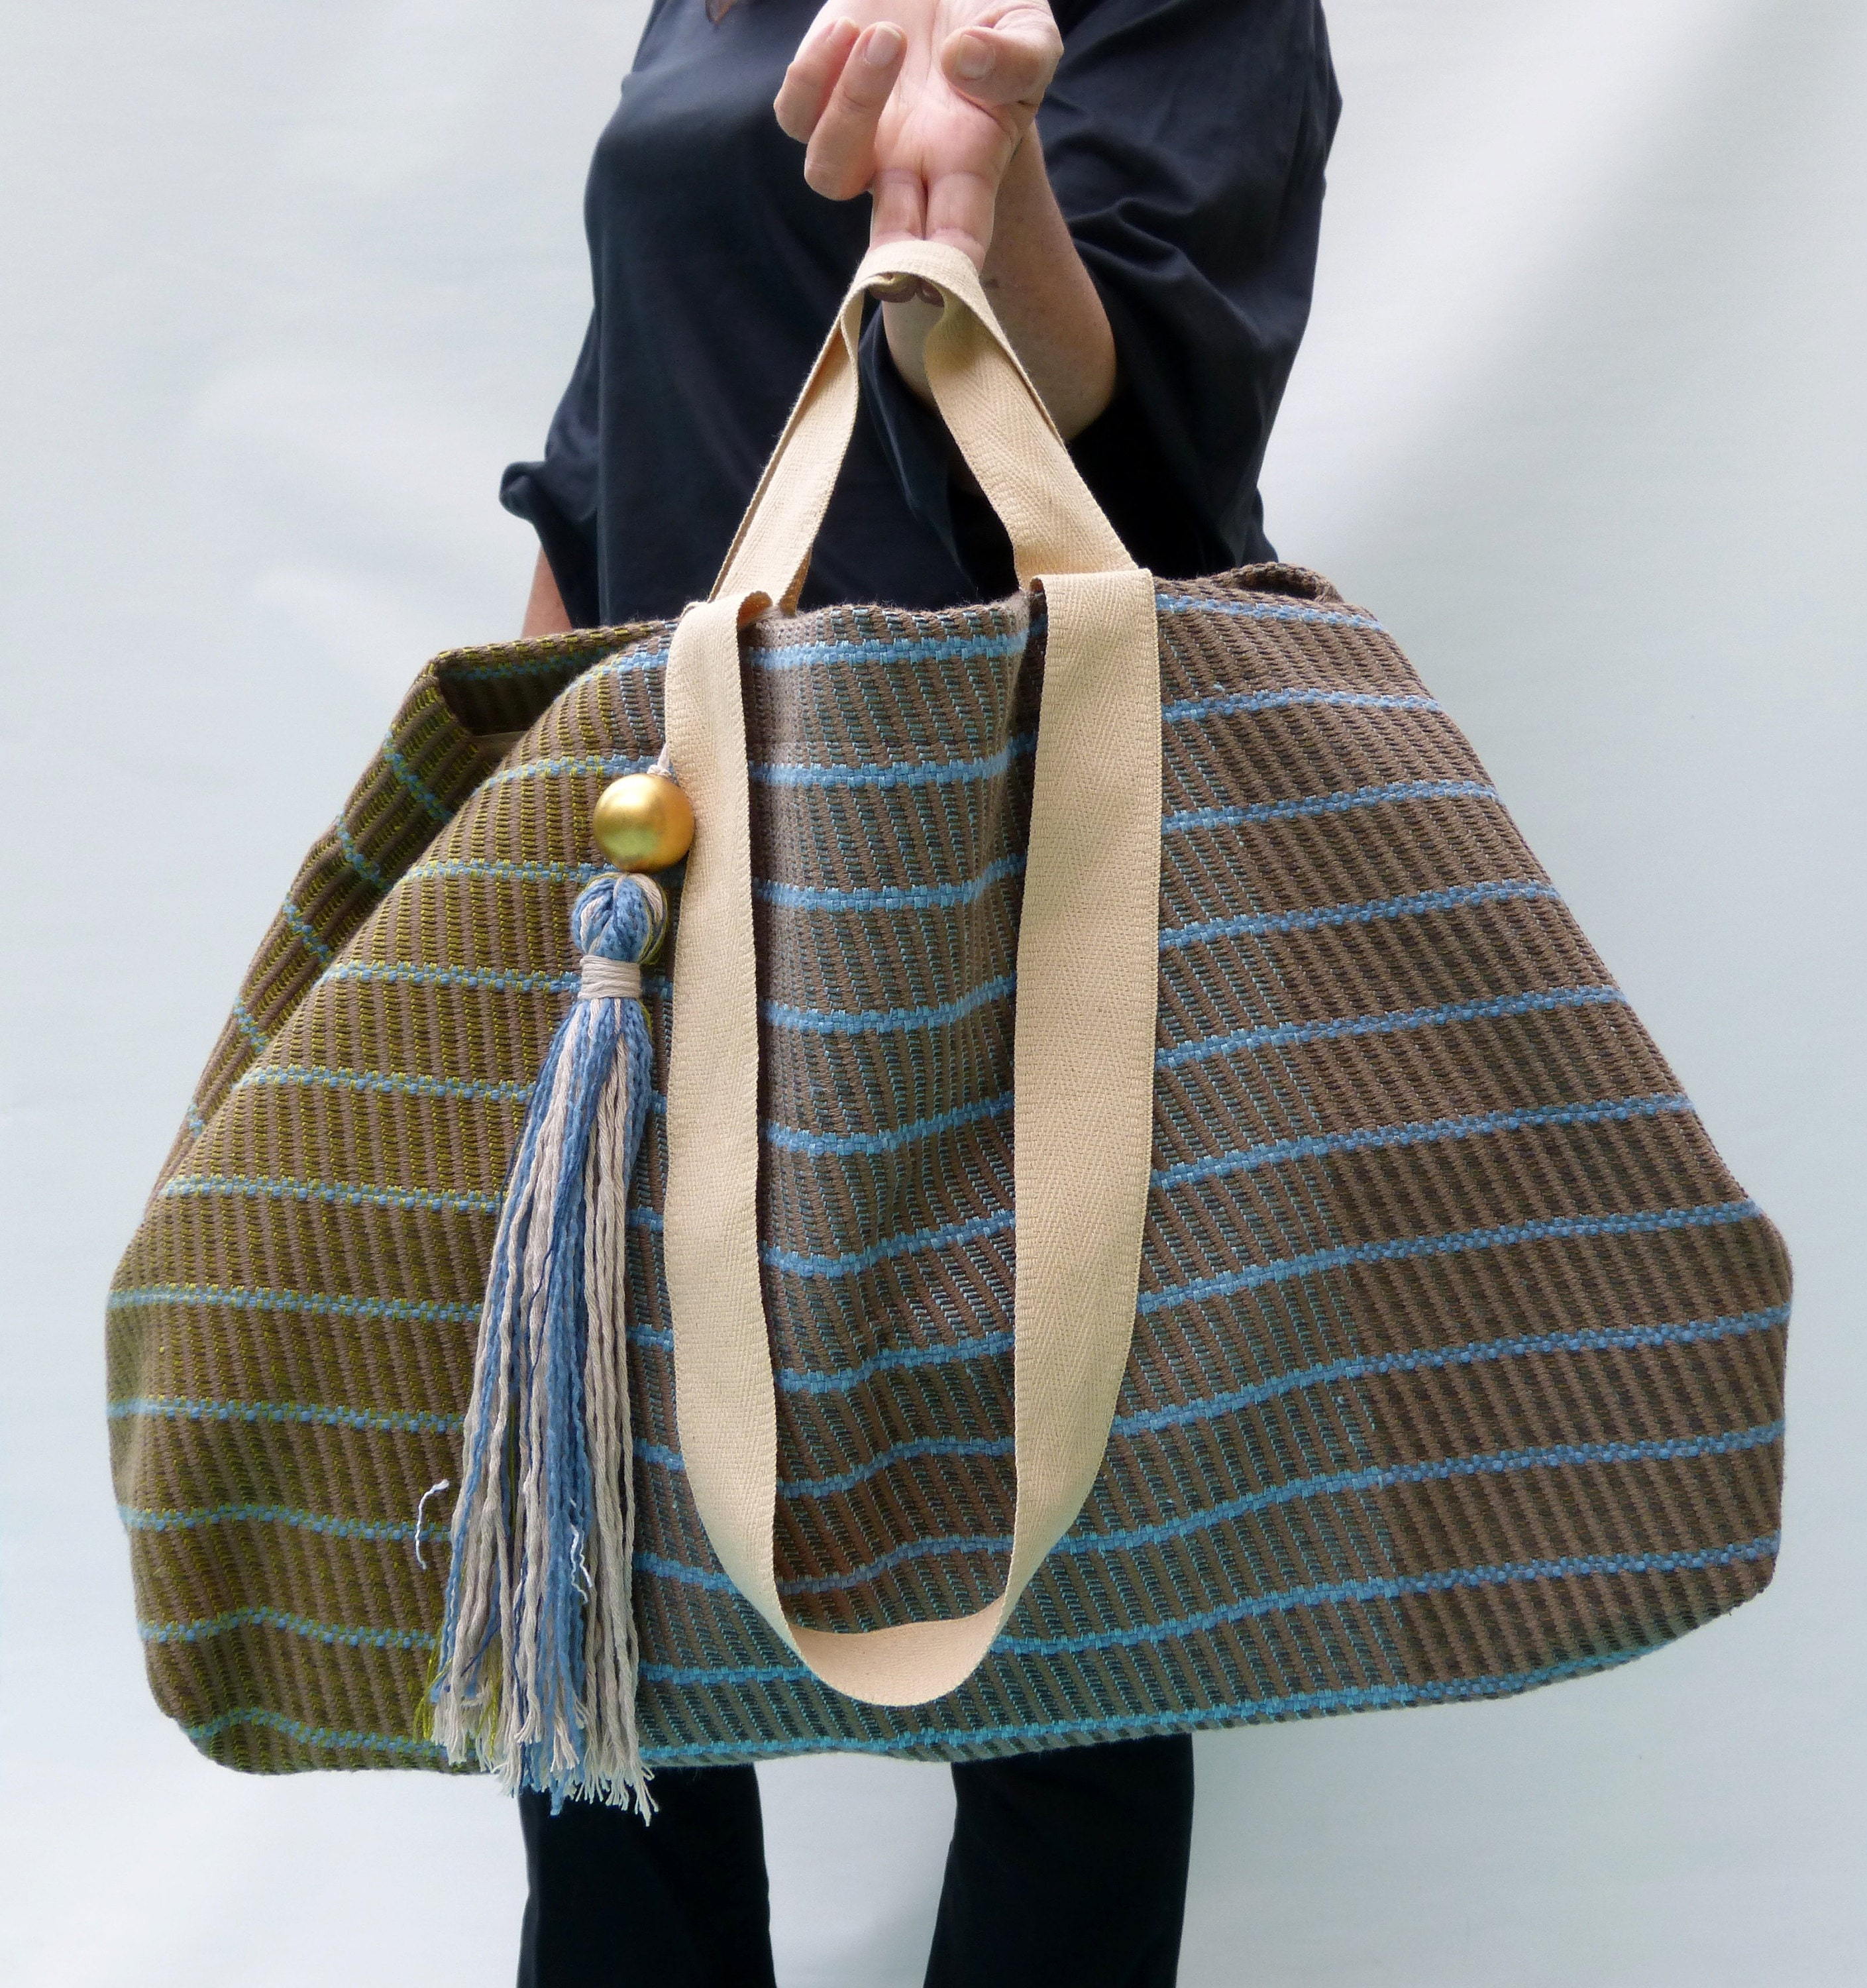 https://www.vquadroitaly.com/listing/209709825/every-day-carry-beach-bag-oversized